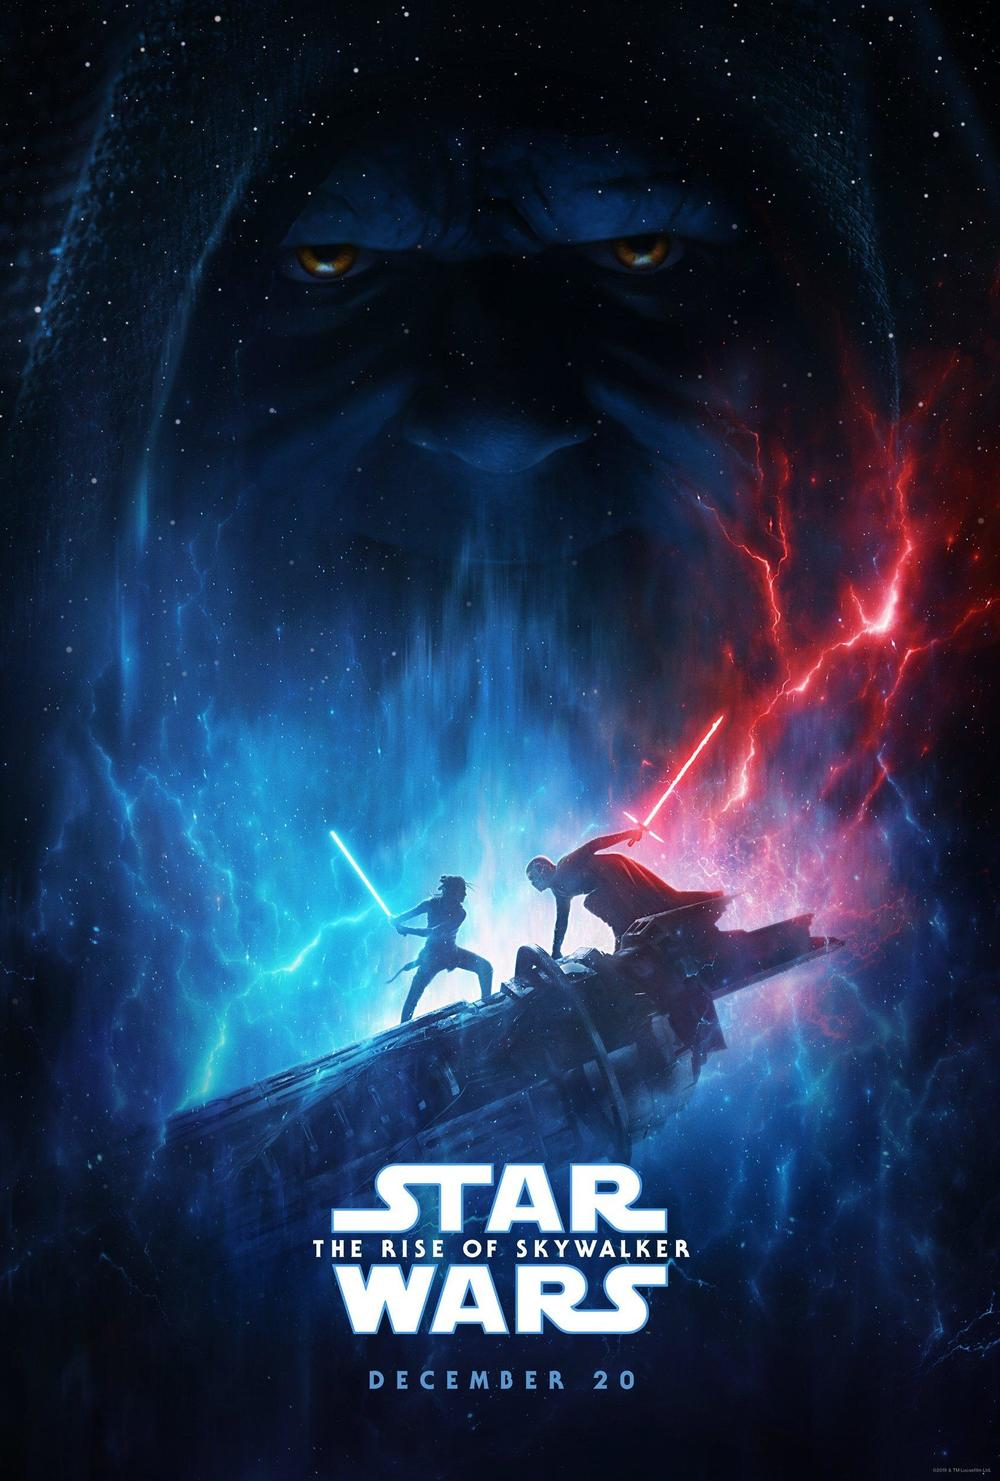 Star Wars: The Rise of Skywalker 2019 NEW movie Silk poster Decorative Wall painting 24x36inch image